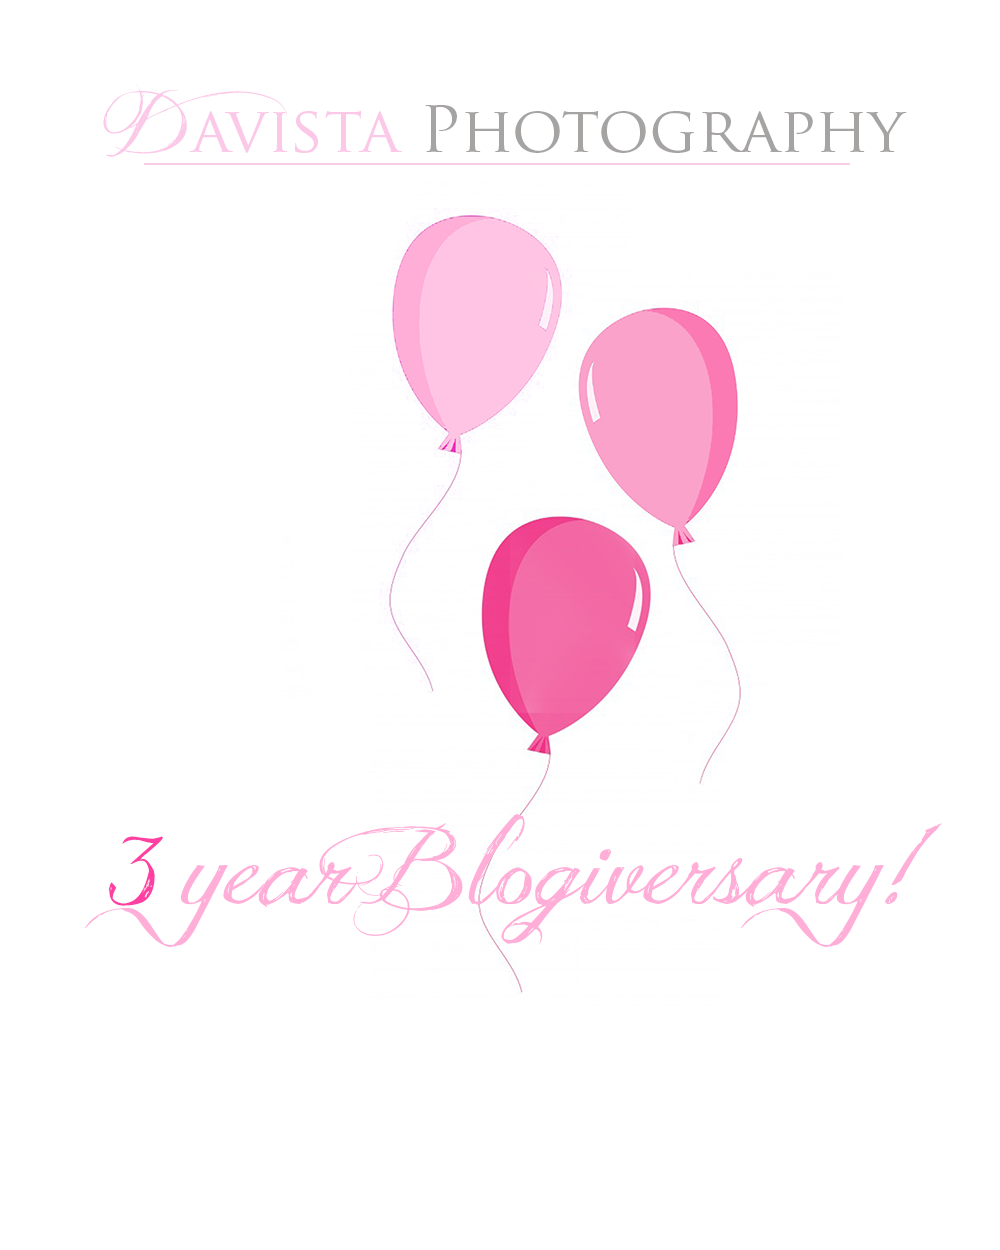 blogiversary ideas